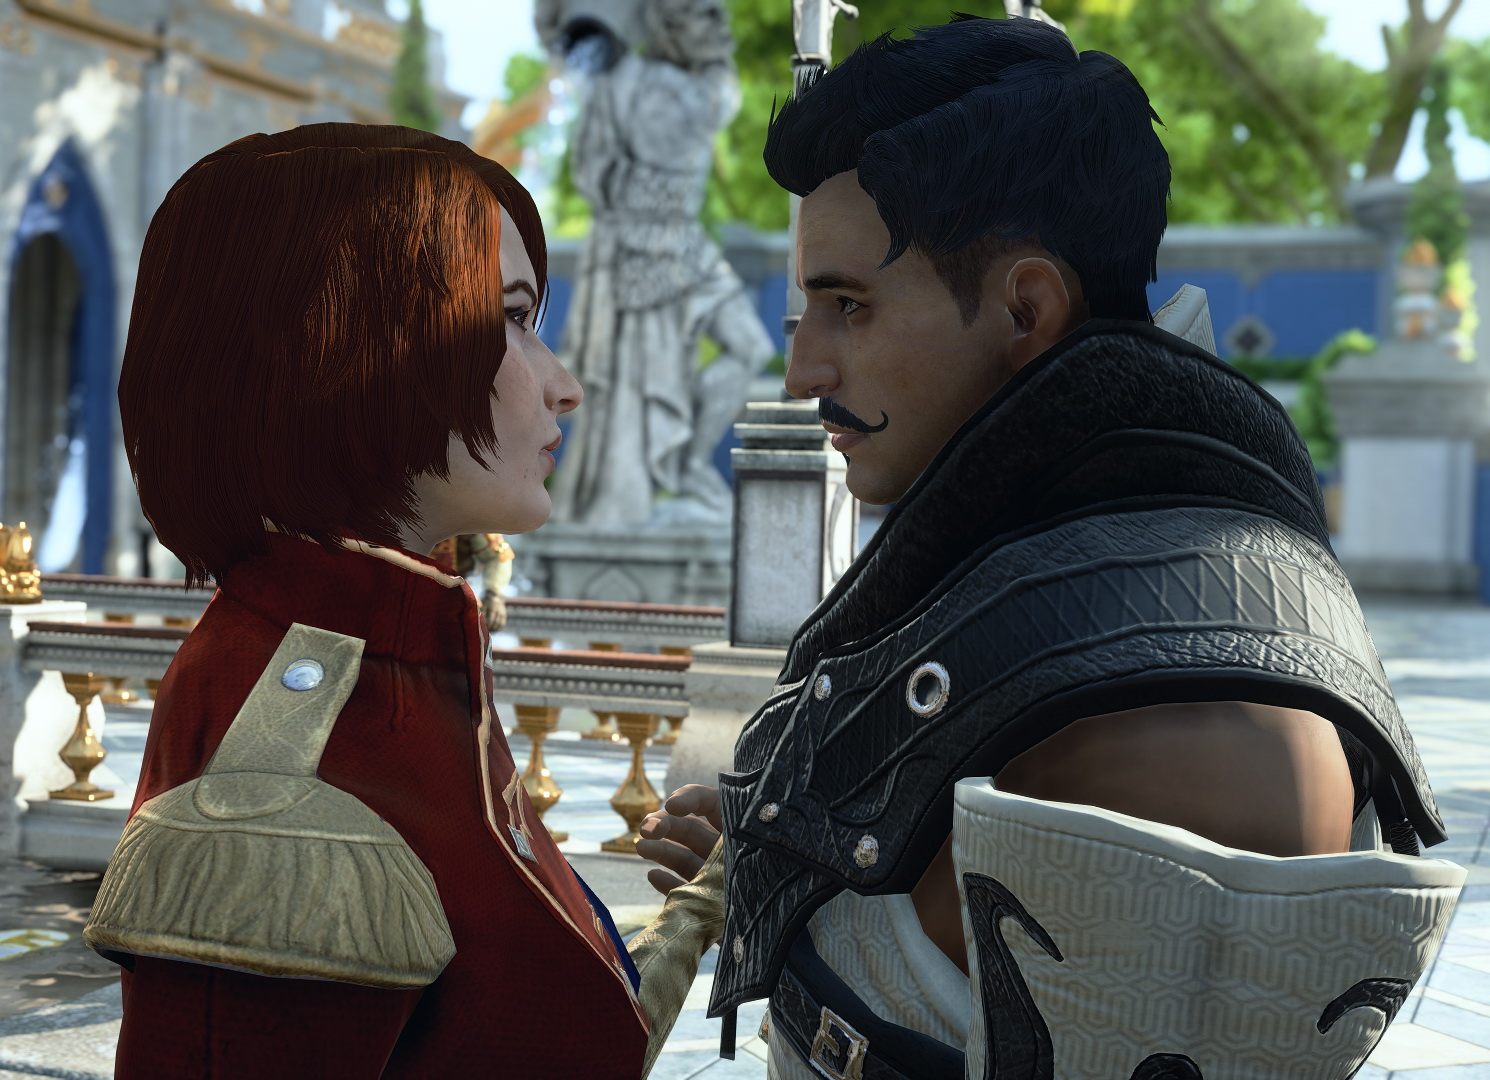 dragon age inquisition dating With thedas at peace, the state of the inquisition must be determined there's time to take a breath, but eventually, the powers that be will grow antsy about the inquisition's role in thedas going forward.